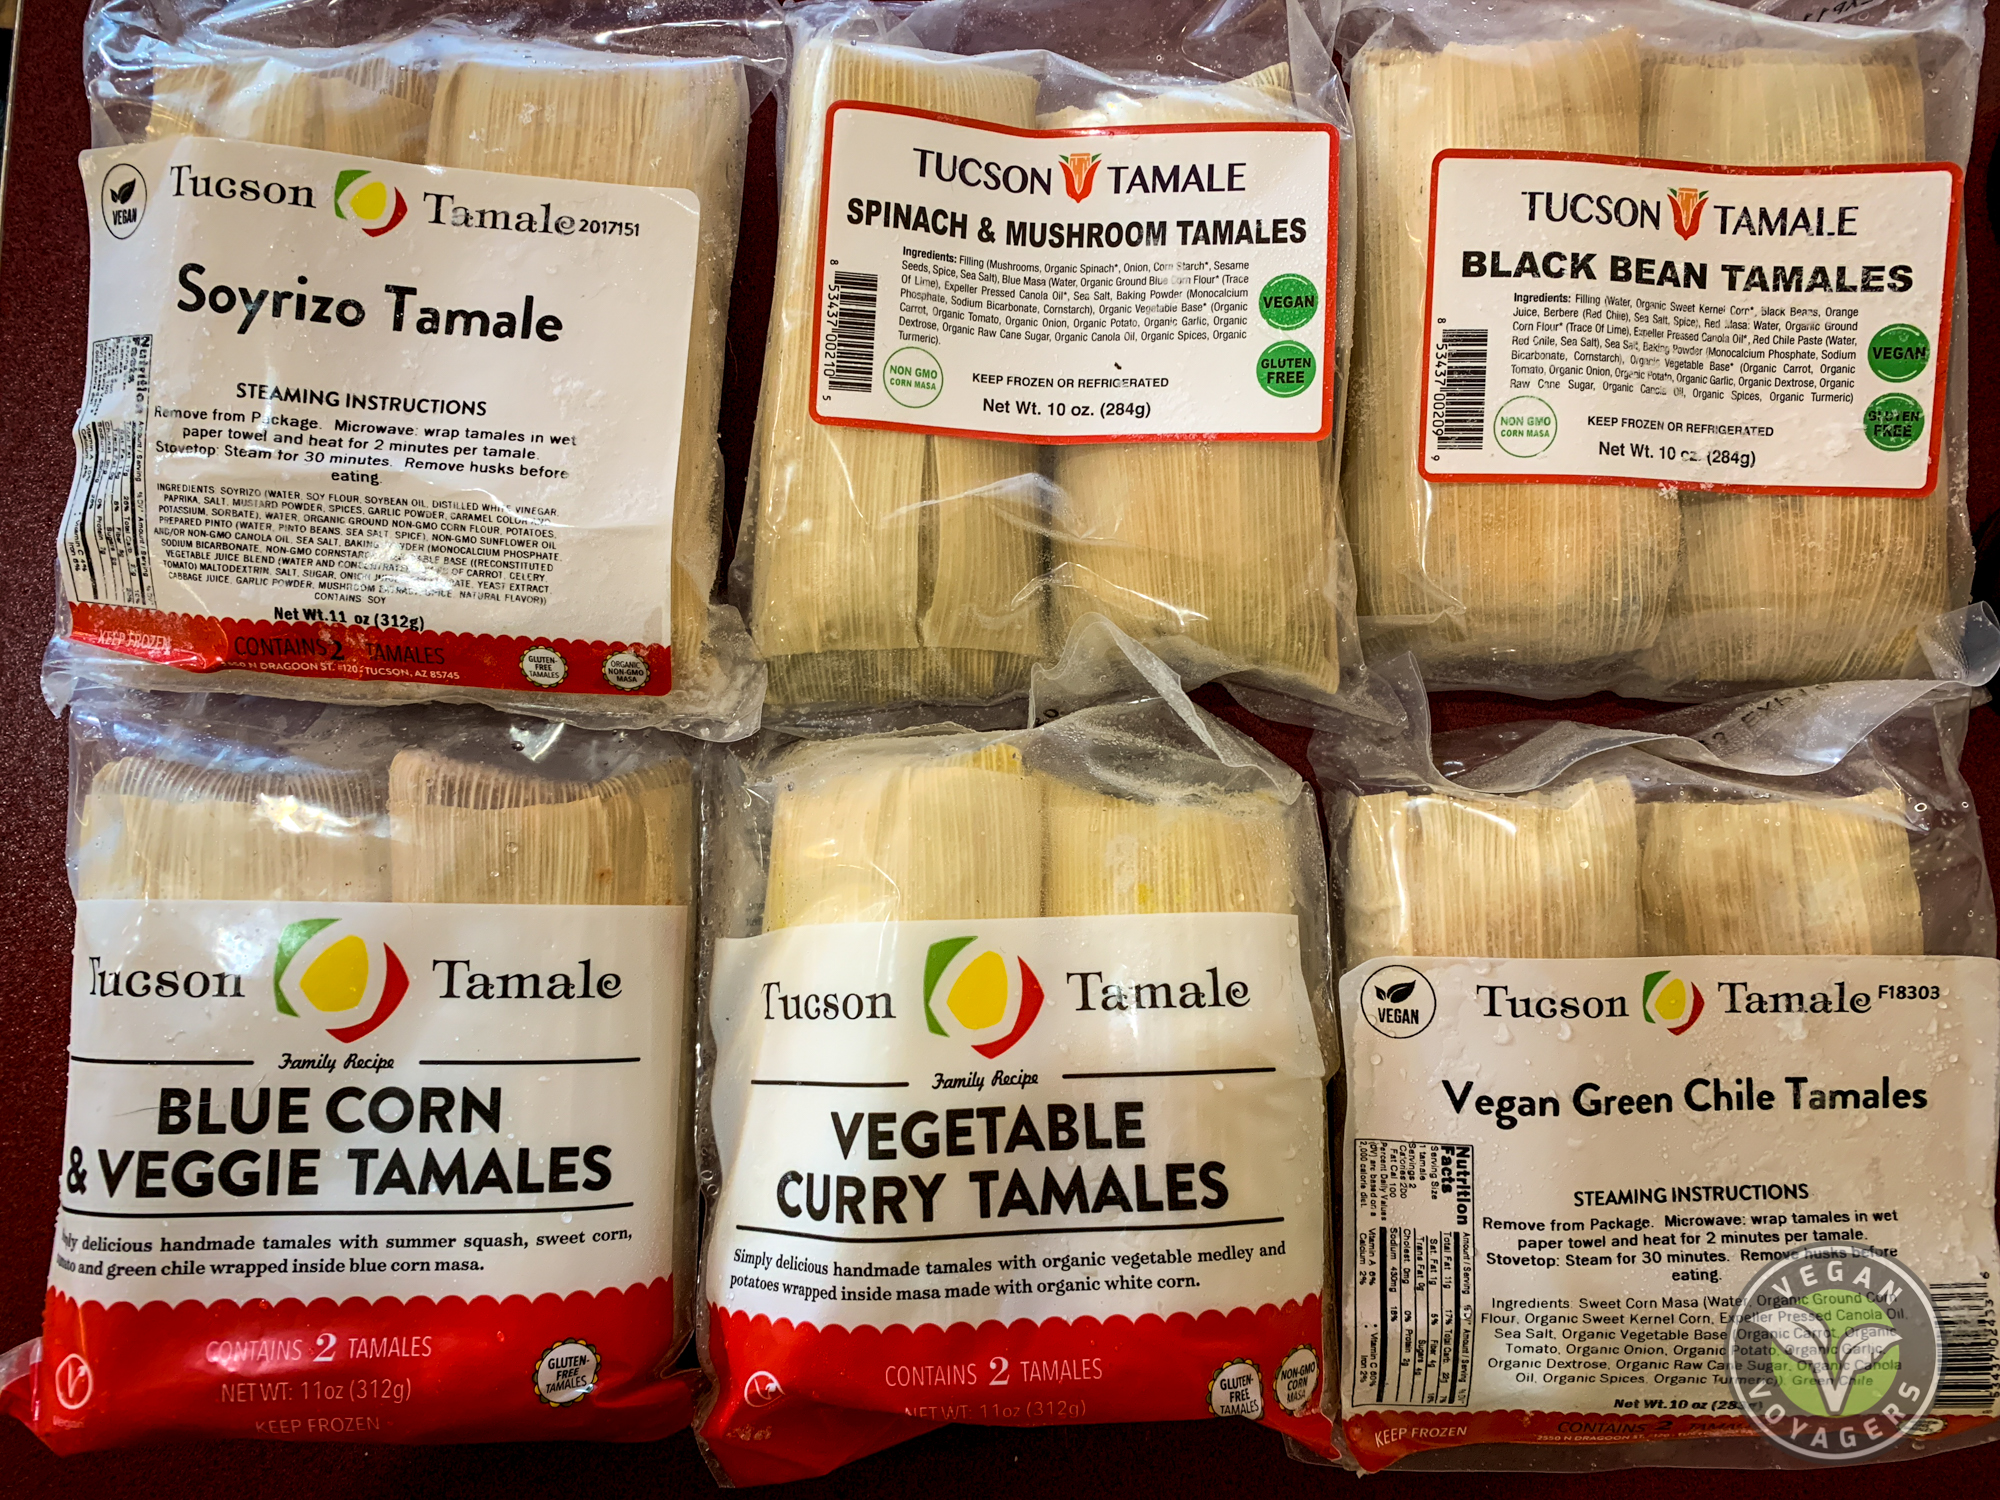 Best Vegan Mexican Food in the US | Tucson Tamale Company